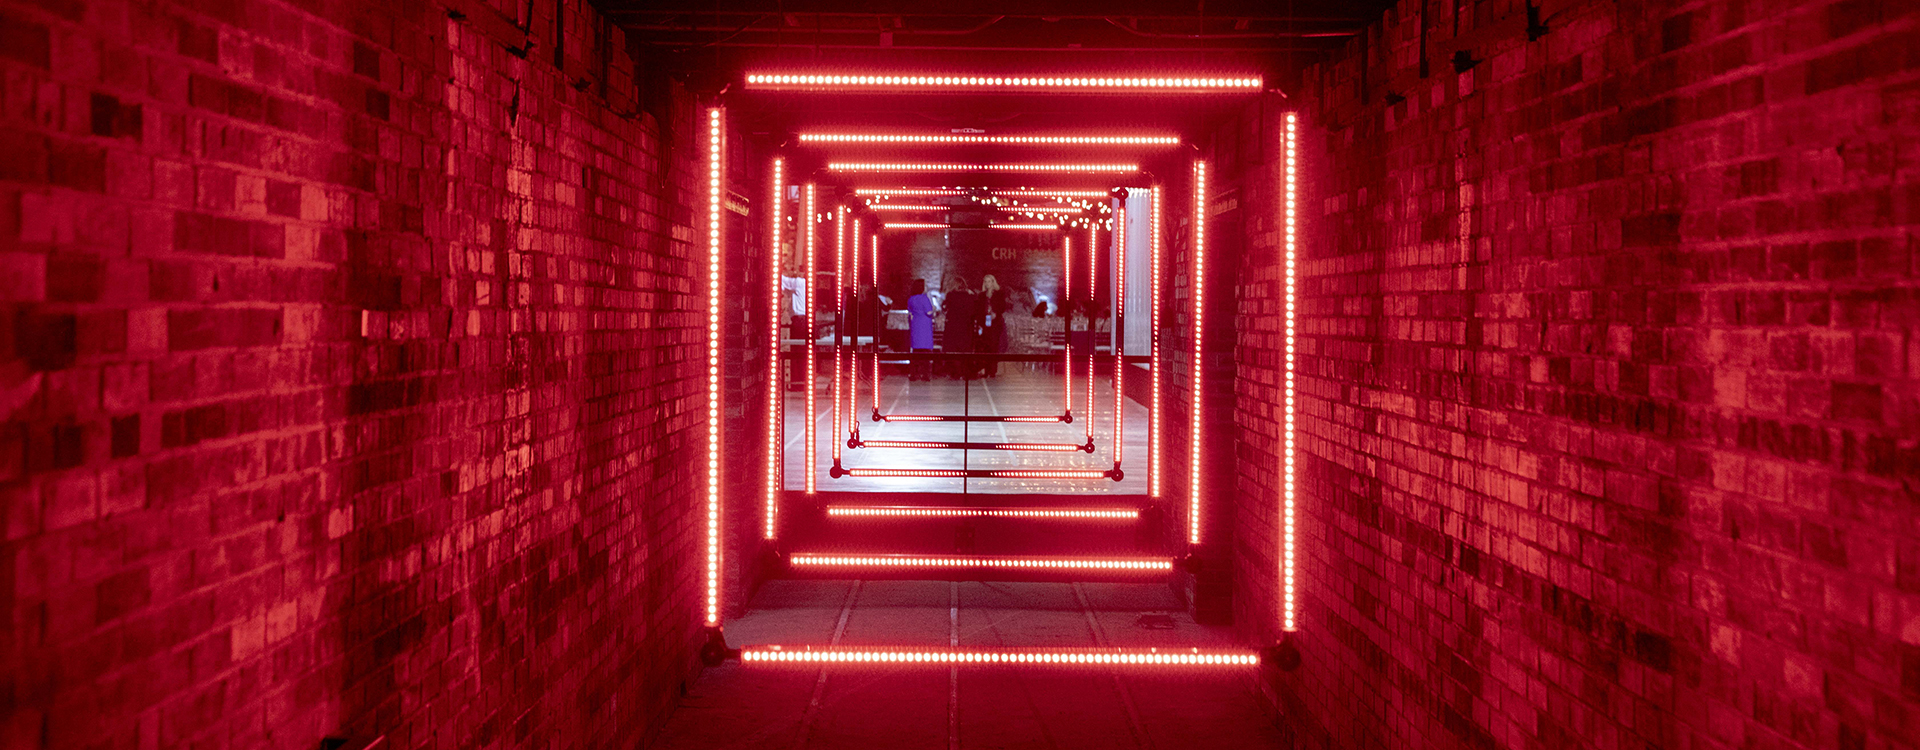 Red lights in the City Builders Gallery